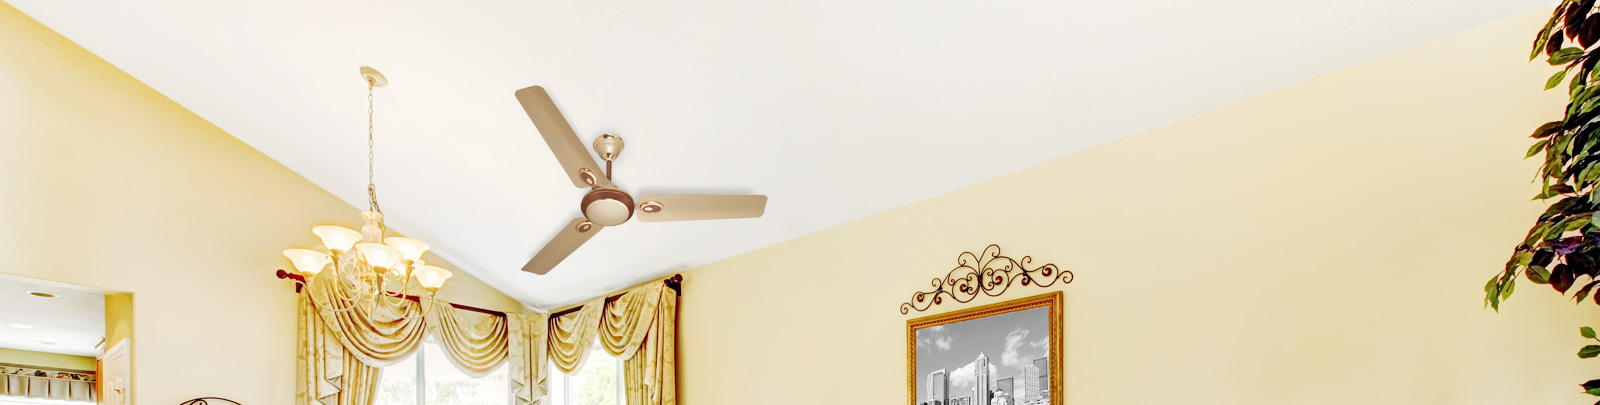 Energy efficient ceiling fans energy saving fan online havells india aloadofball Images